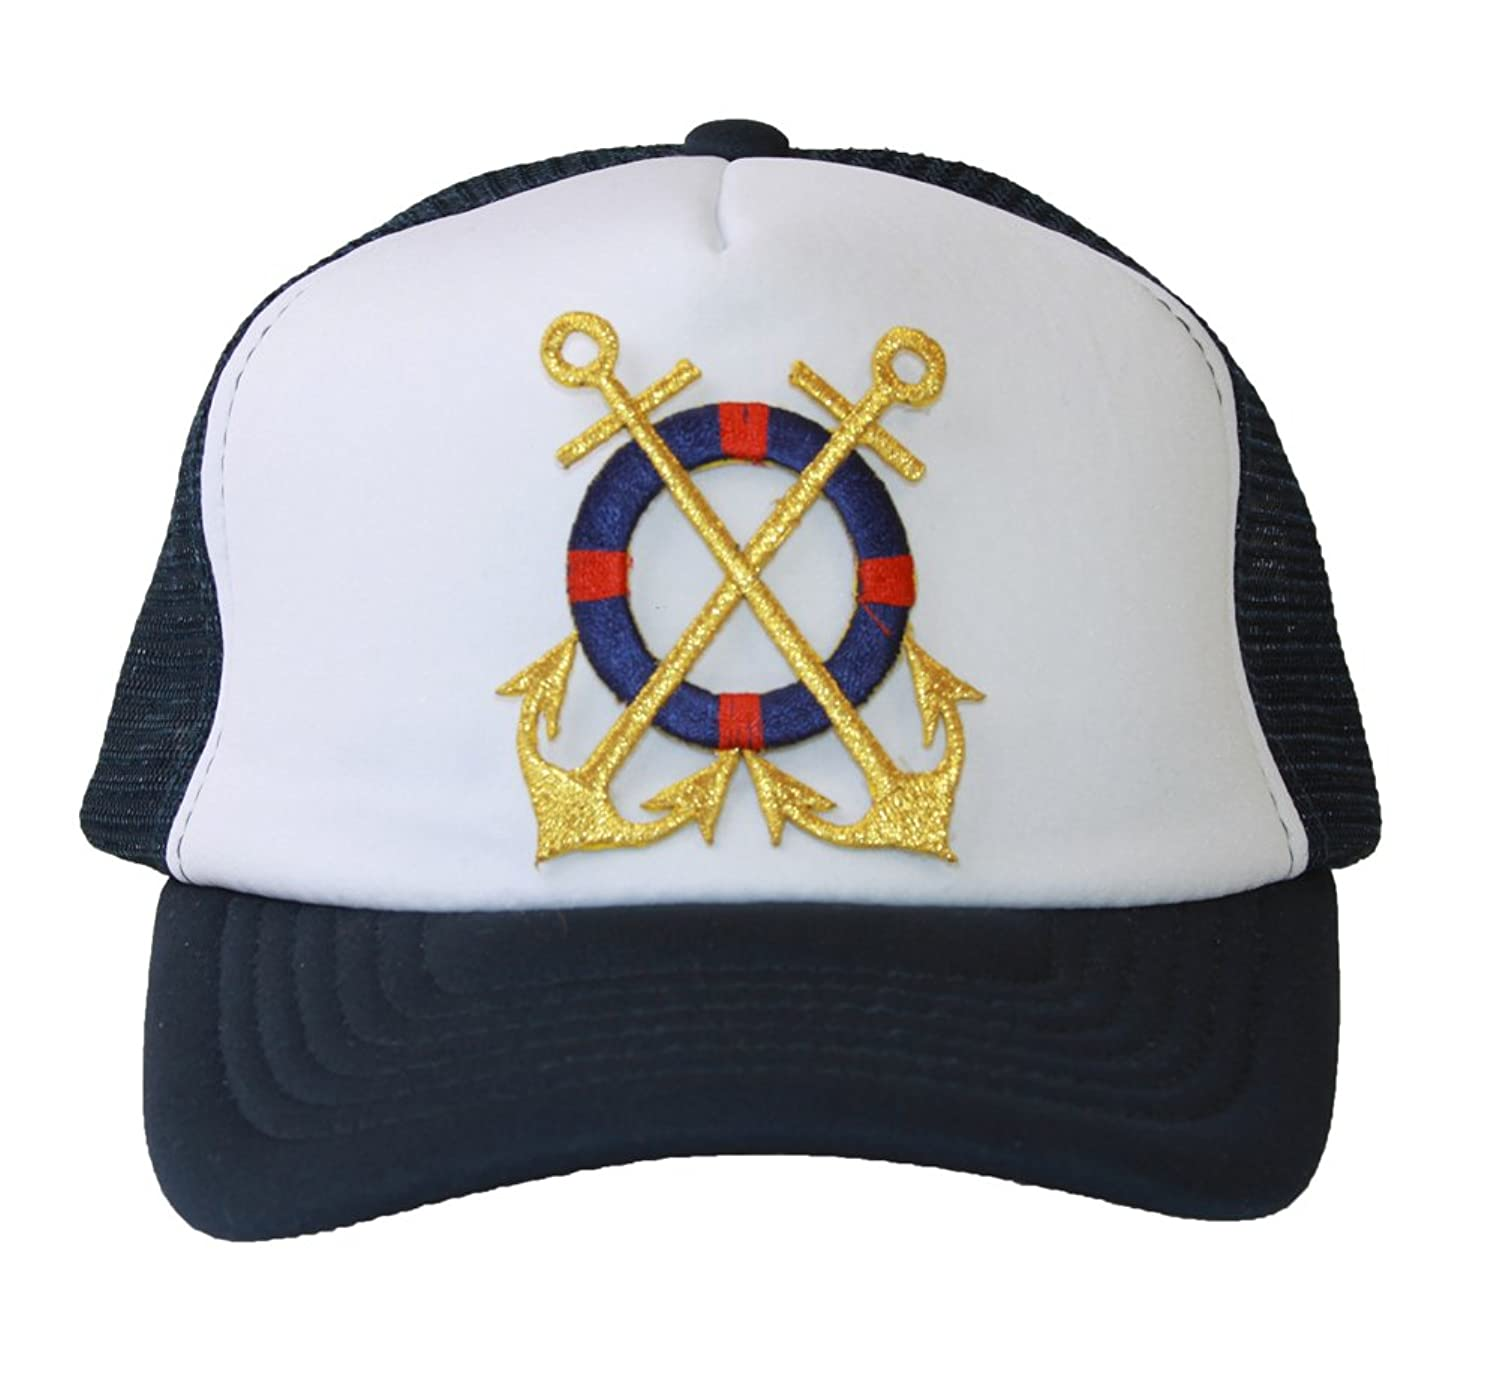 Trucker Mesh Vent Snapback Hat, Gold Anchor 3D Patch Embroidery Navy Blue